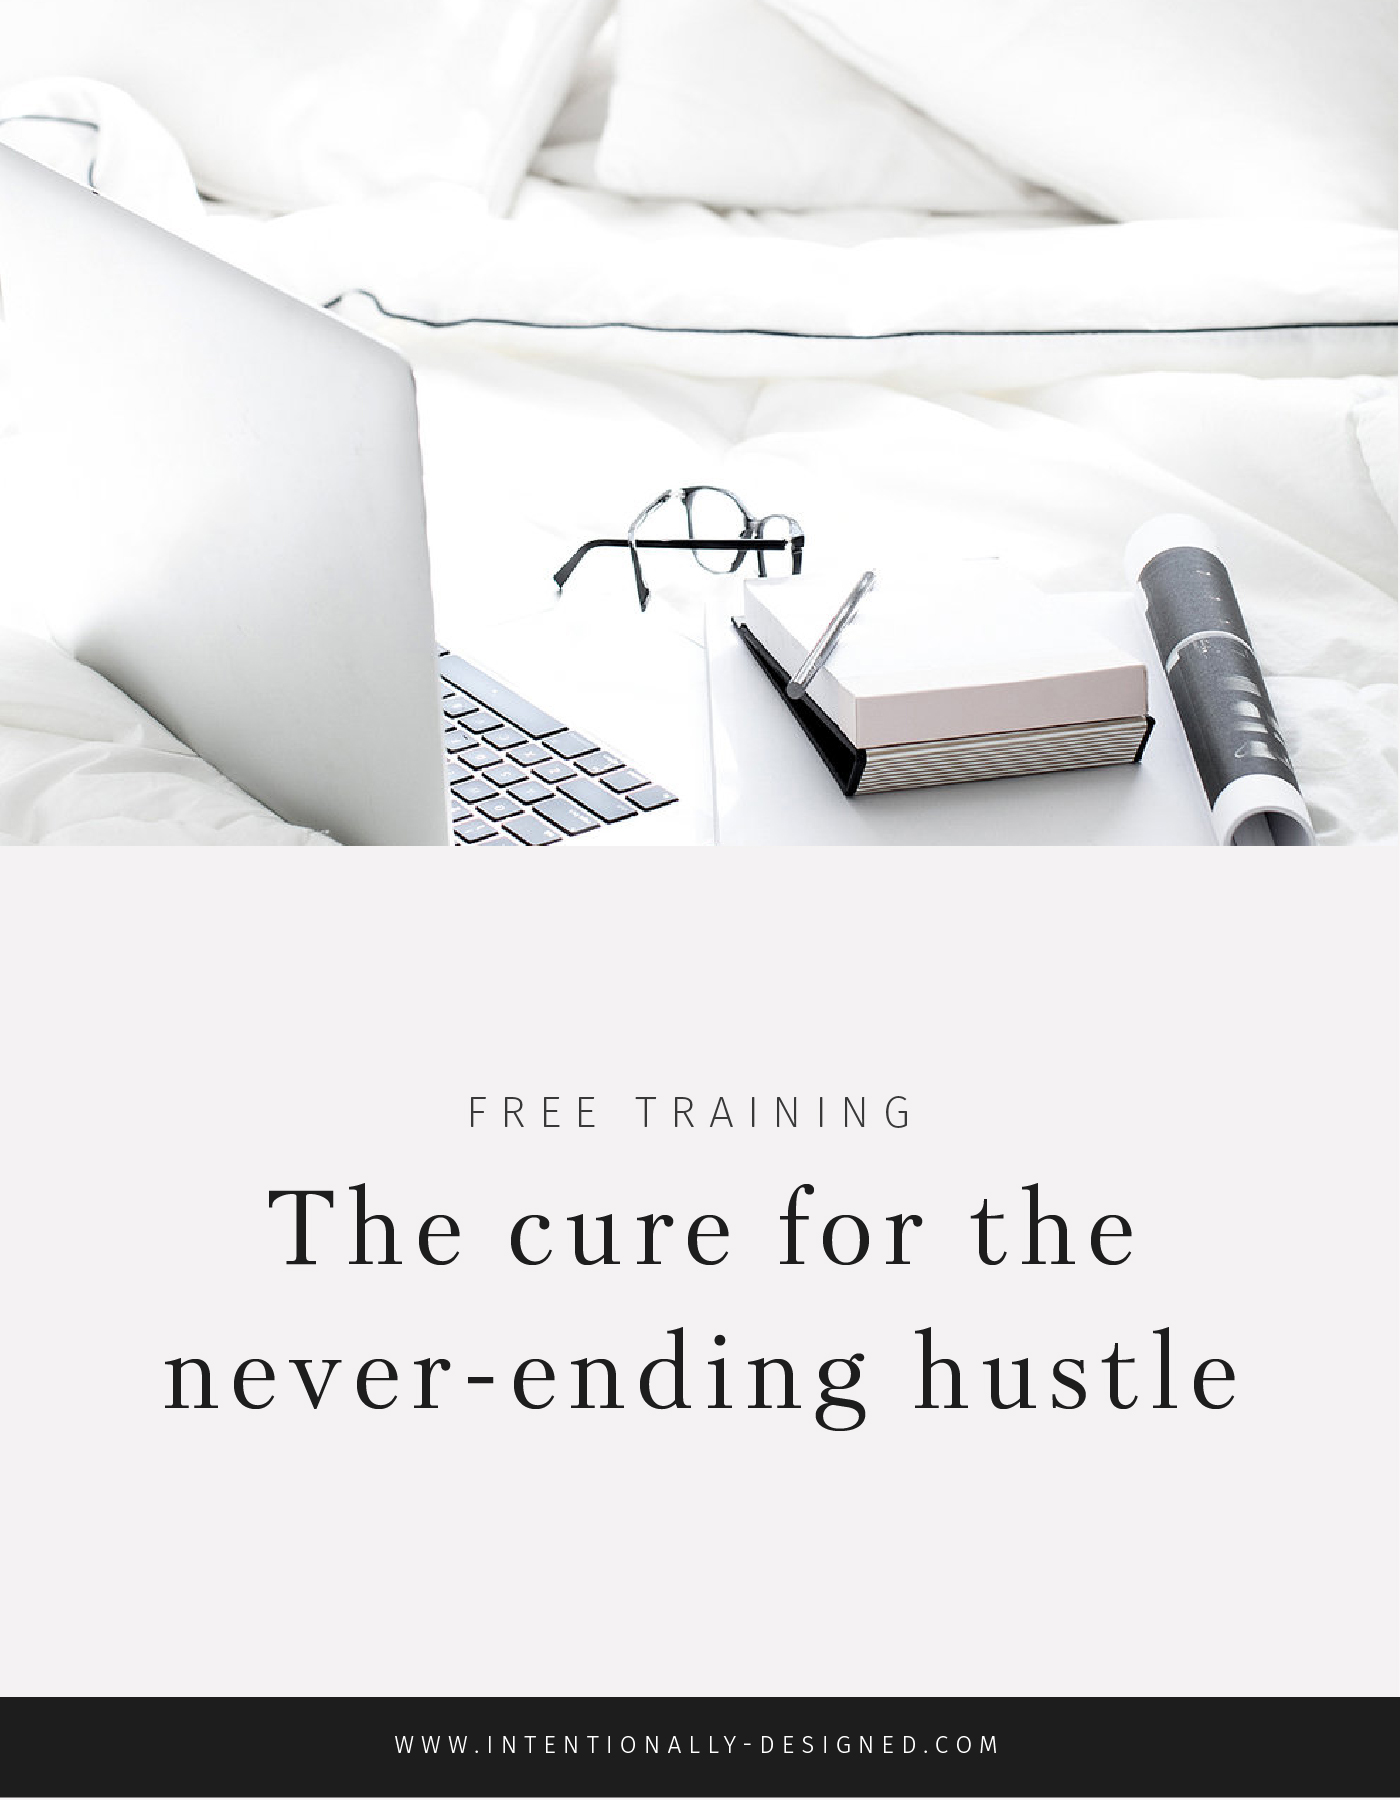 The cure for the never-ending hustle